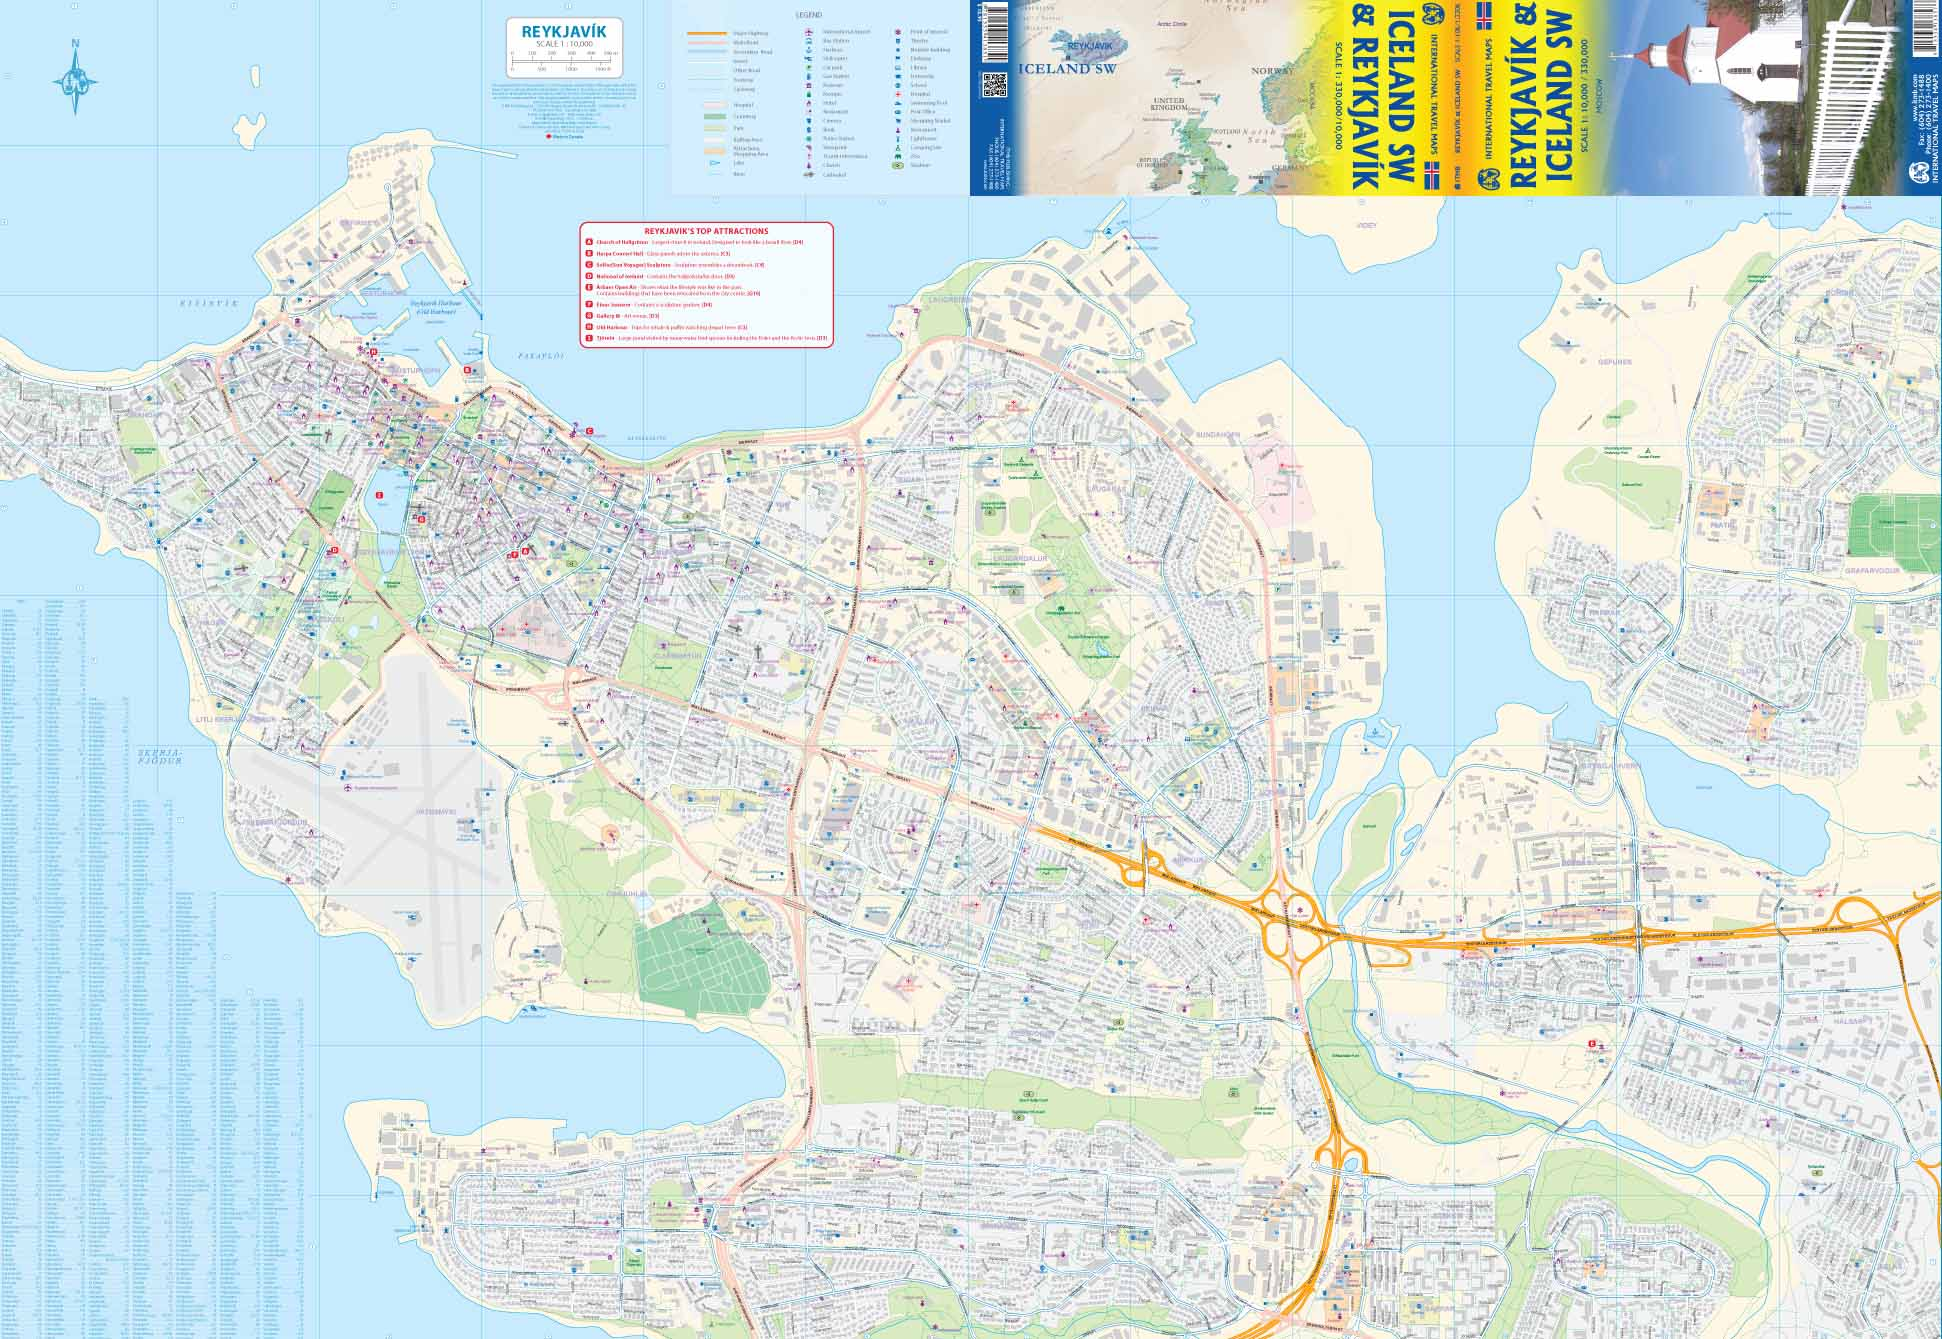 Topographic Map Of Iceland.Maps For Travel City Maps Road Maps Guides Globes Topographic Maps